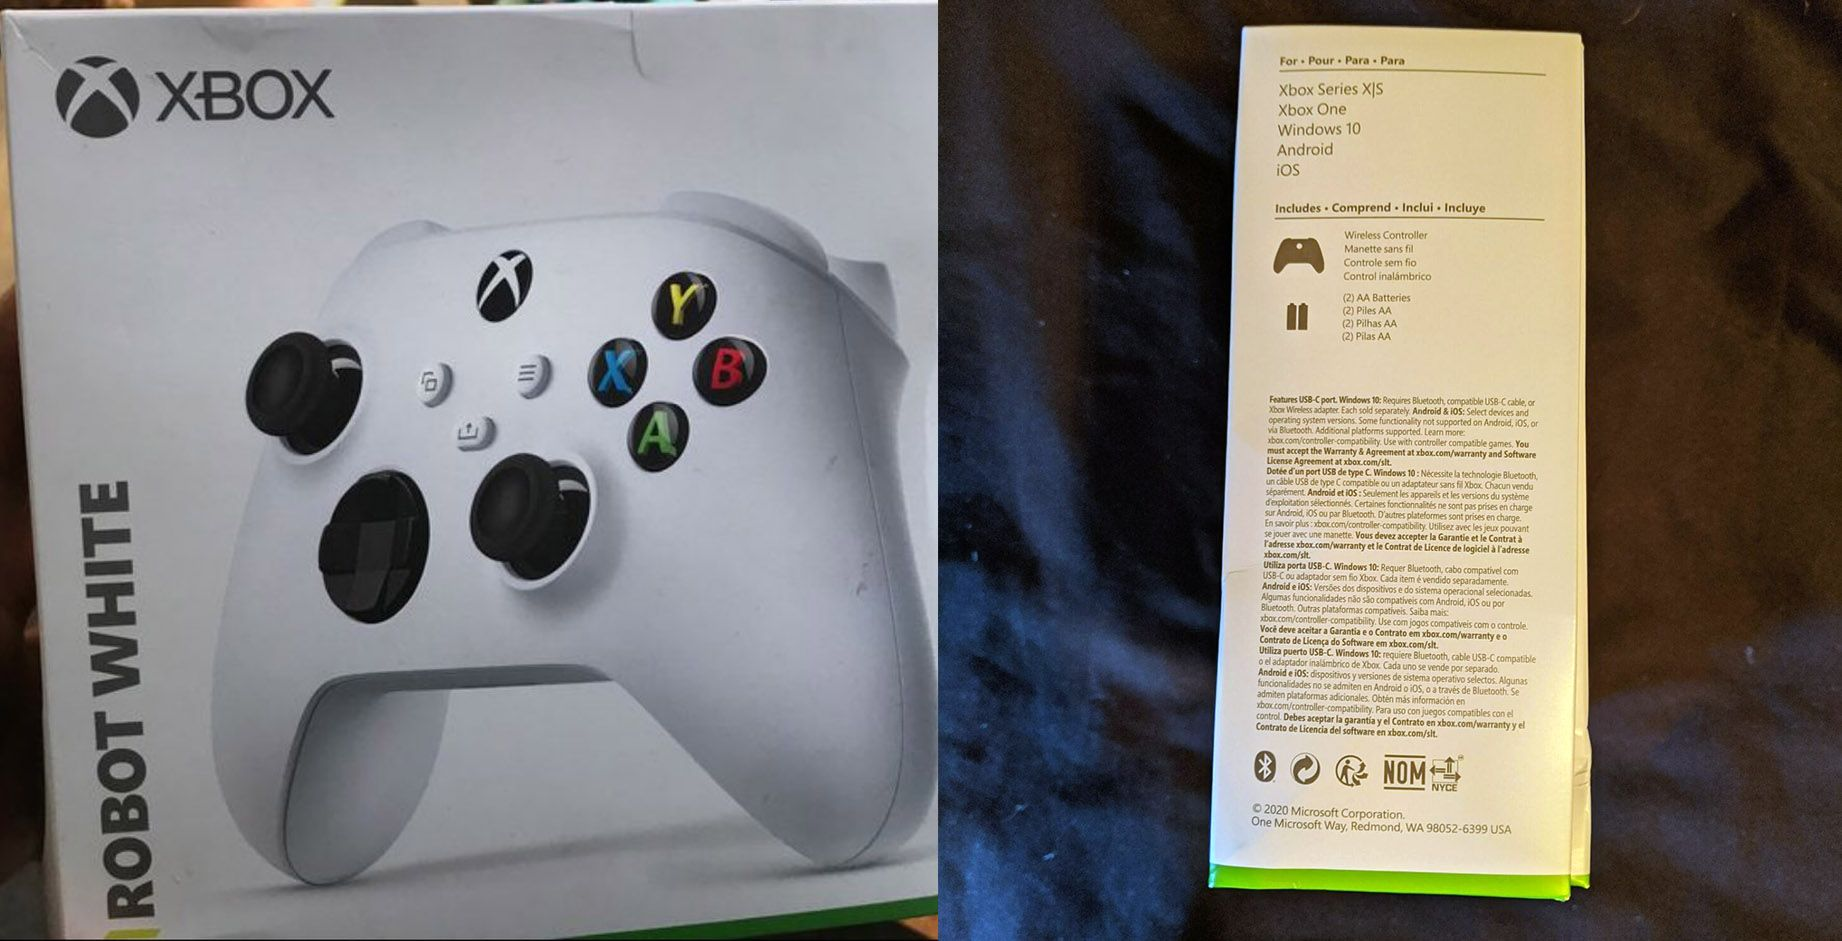 'Xbox Series S' console revealed by controller packaging